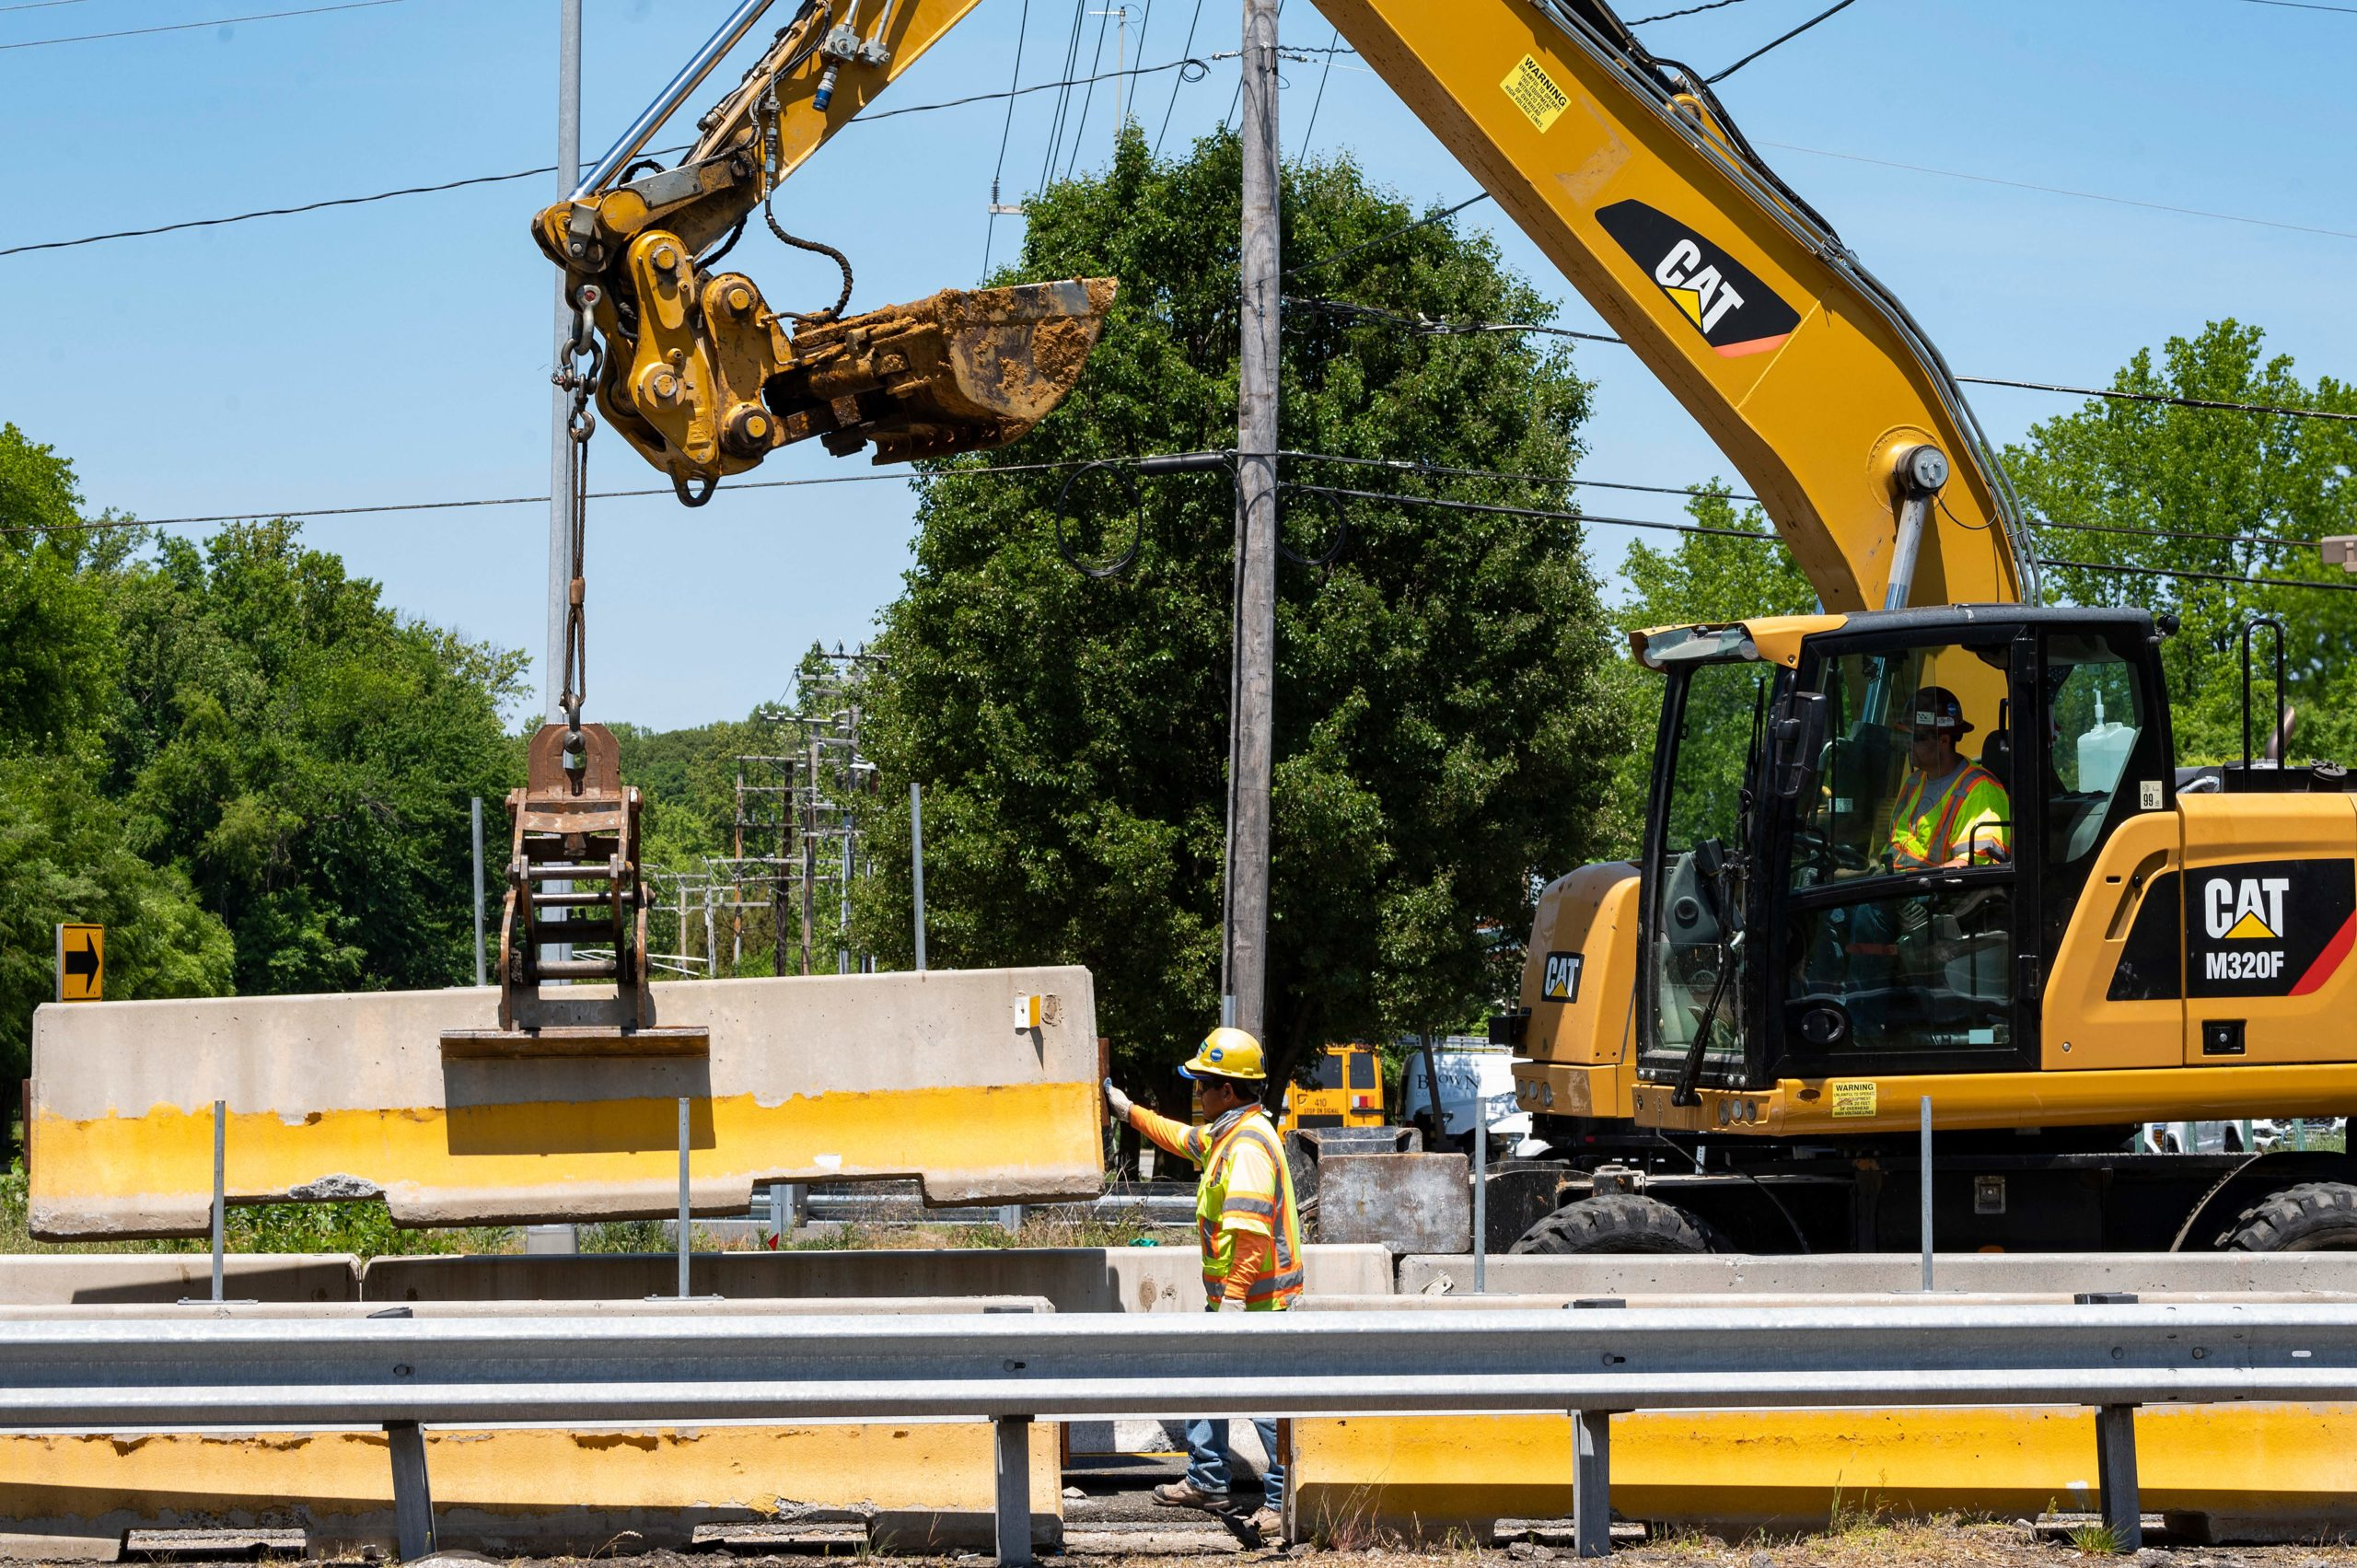 Construction workers move road barriers into place at a project site in Annapolis, Maryland on May 21. (Jim Watson/AFP via Getty Images)